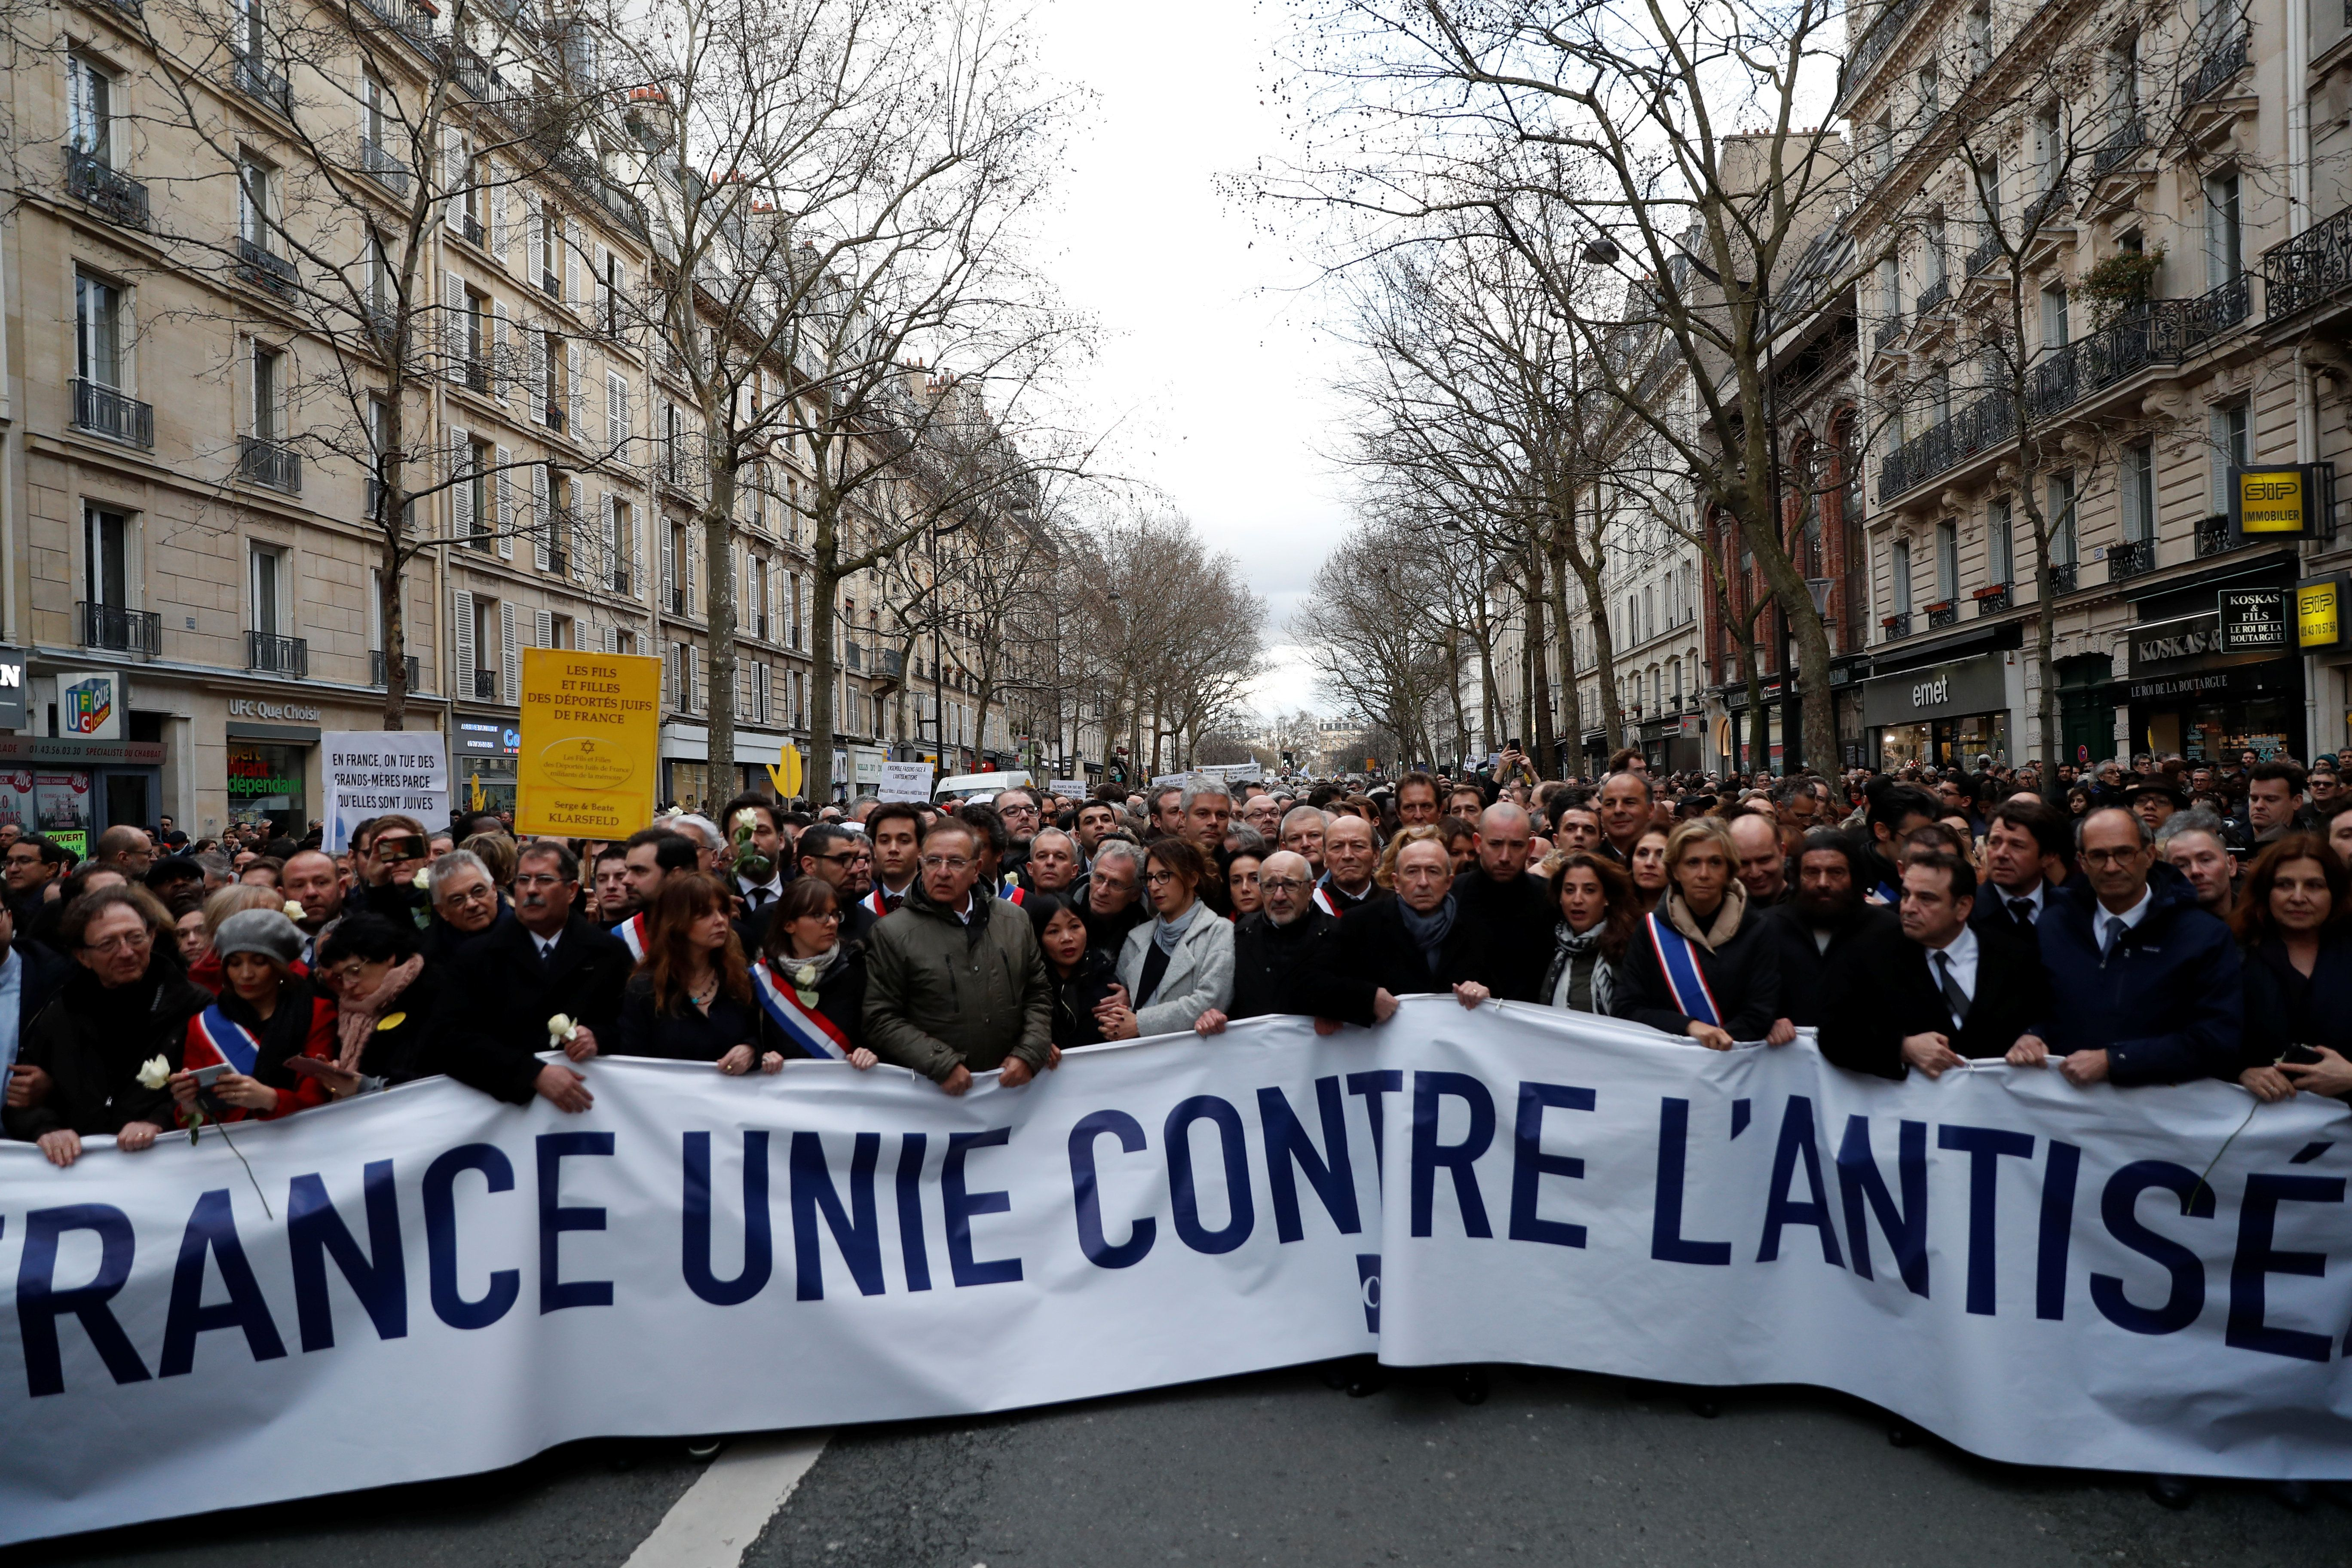 Thousands March In France Over The Murder Of An 85-Year-Old Holocaust Survivor